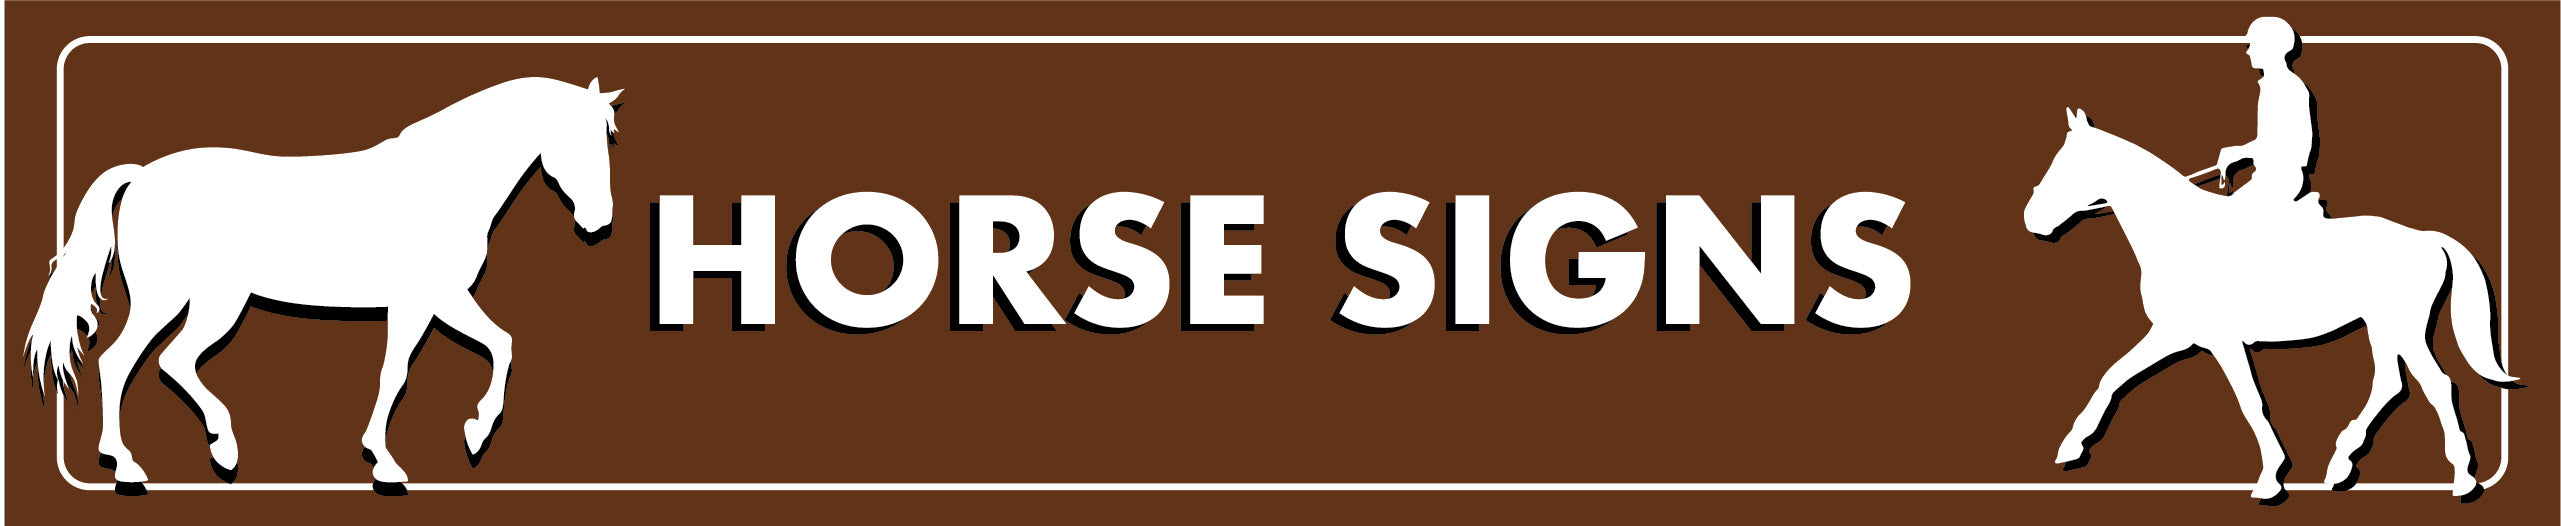 Horse signs